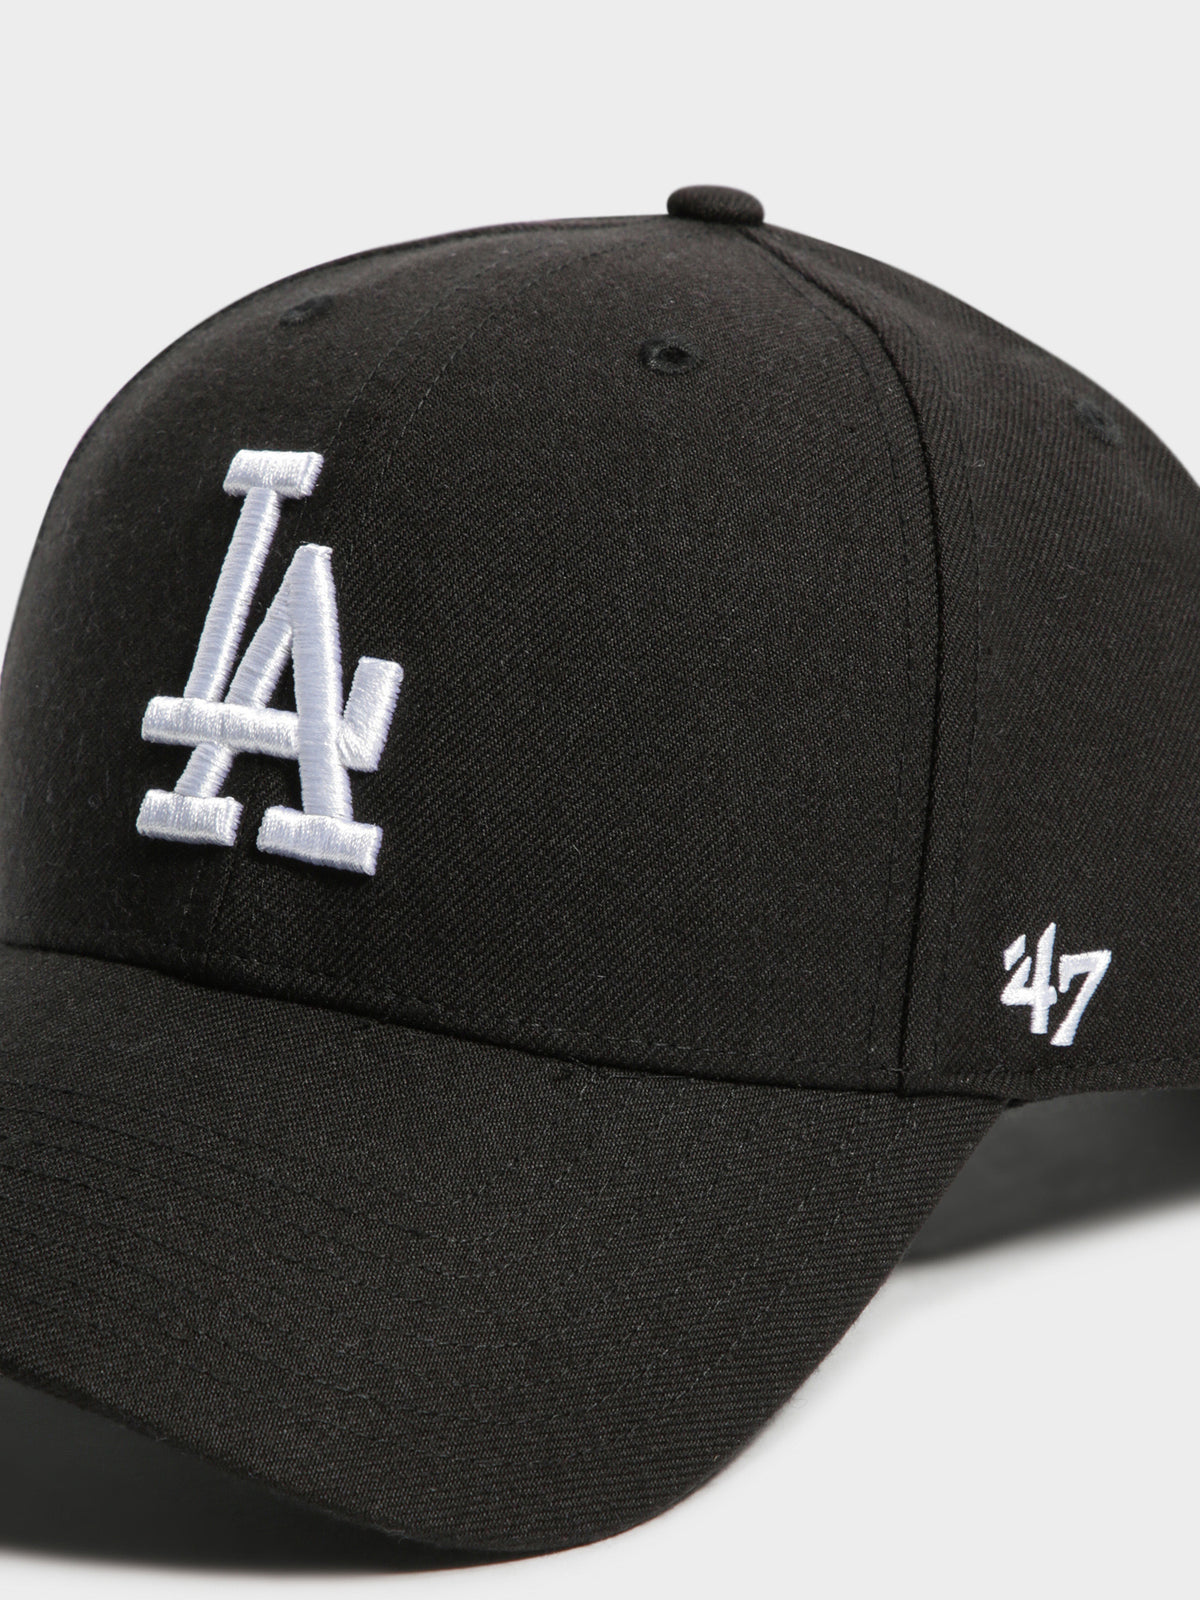 LA Dodgers MVP Baseball Cap in Black